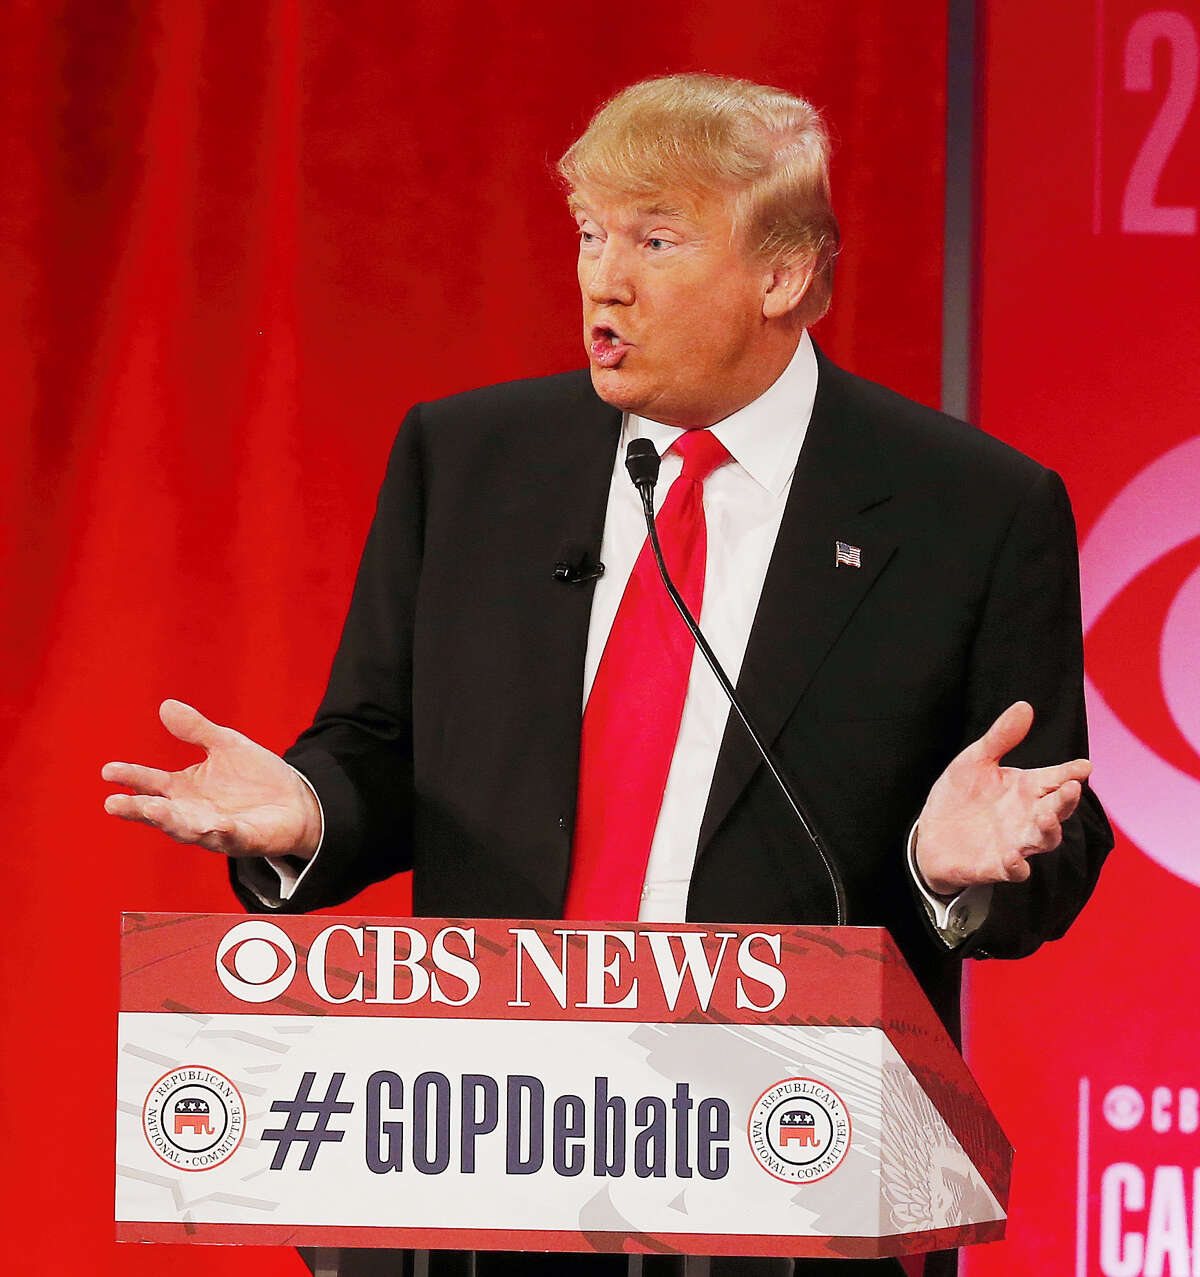 ASSOCIATED PRESS Republican presidential candidate, businessman Donald Trump speaks during the CBS News Republican presidential debate at the Peace Center, Saturday in Greenville, S.C.